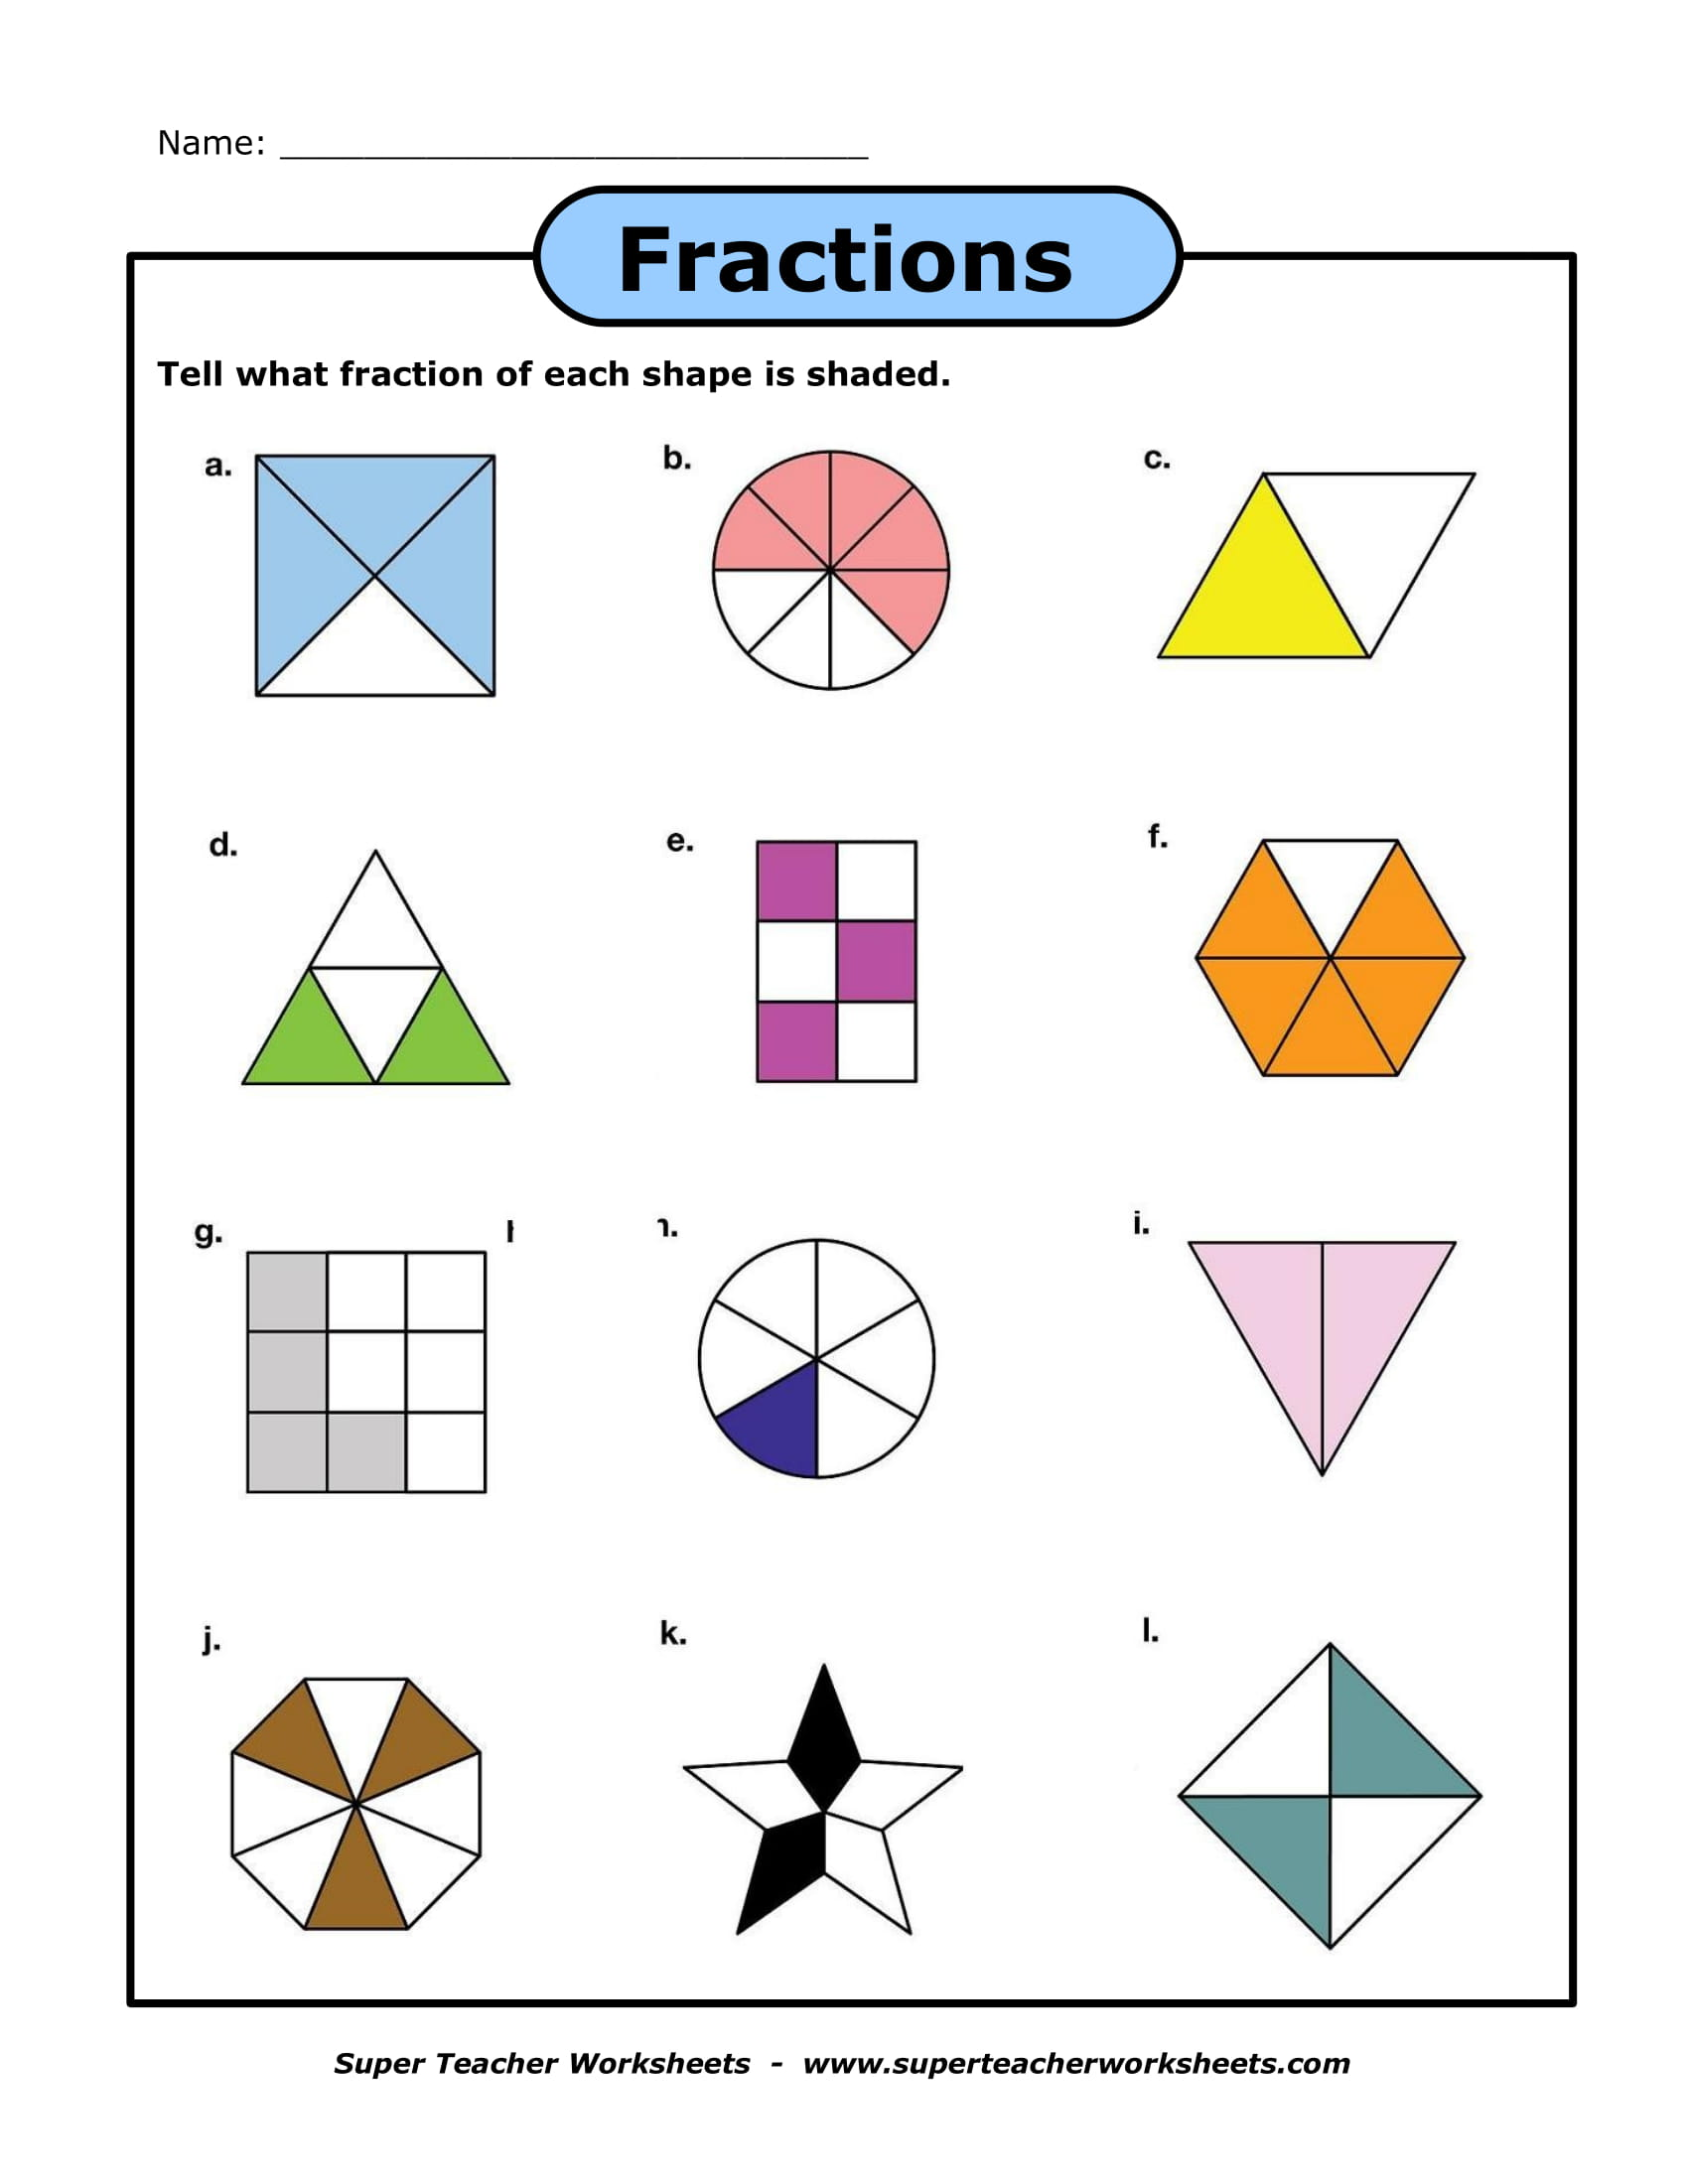 Worksheets Fraction Worksheet 9 fraction worksheets examples pdf fractions sample worksheet